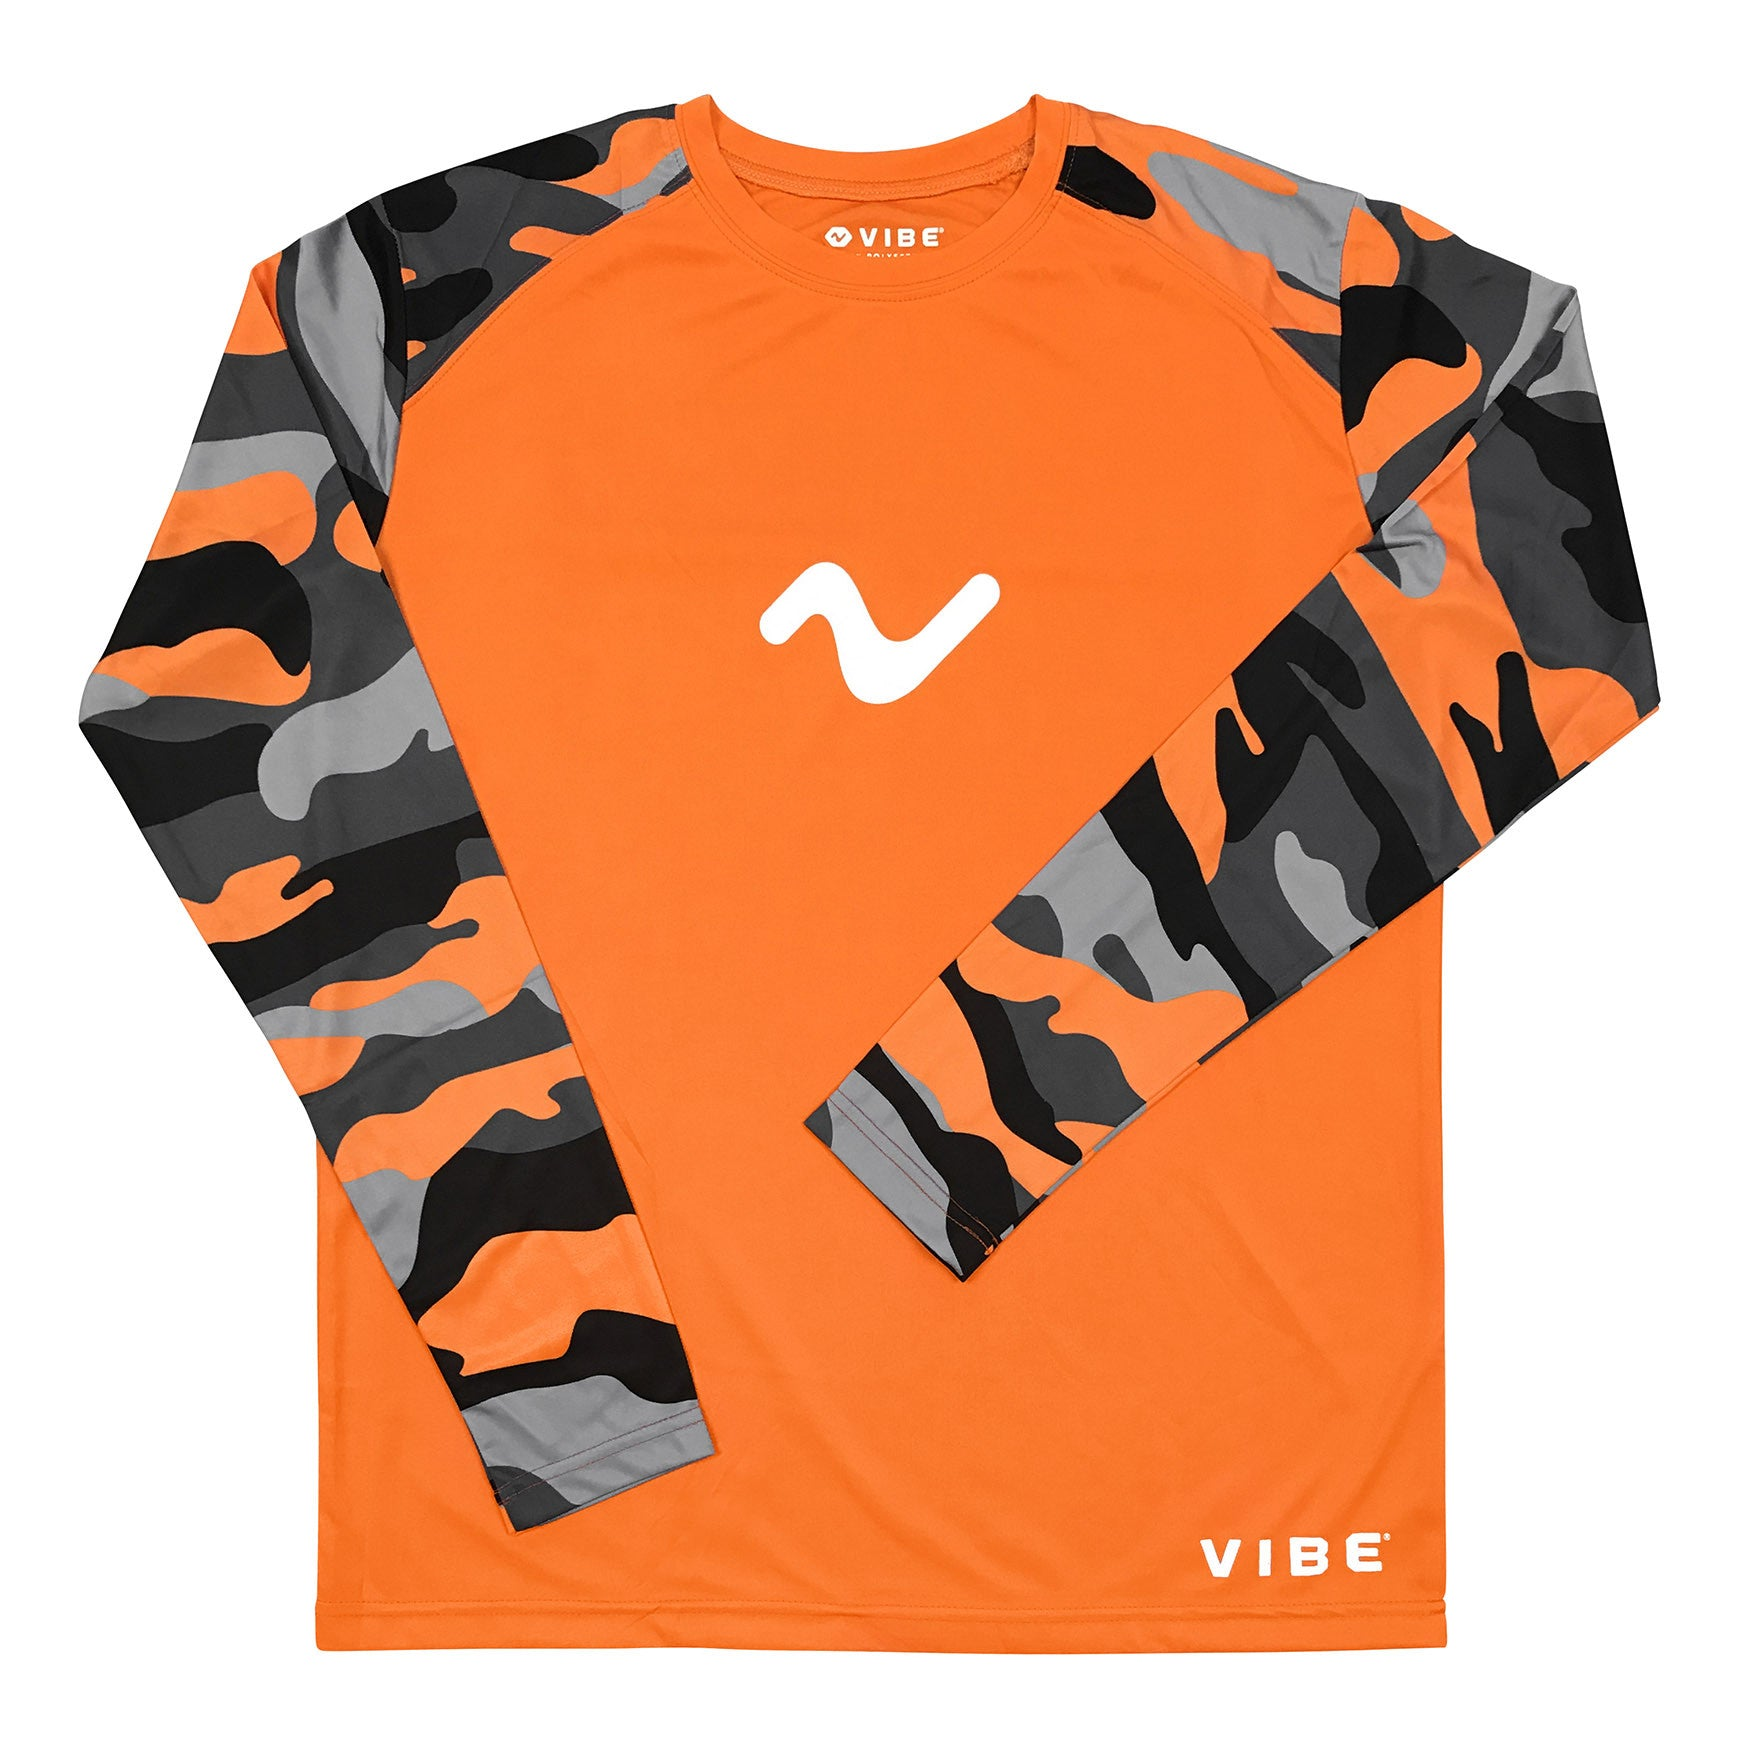 Vibe Performance Long Sleeve Shirt - Vintage Orange